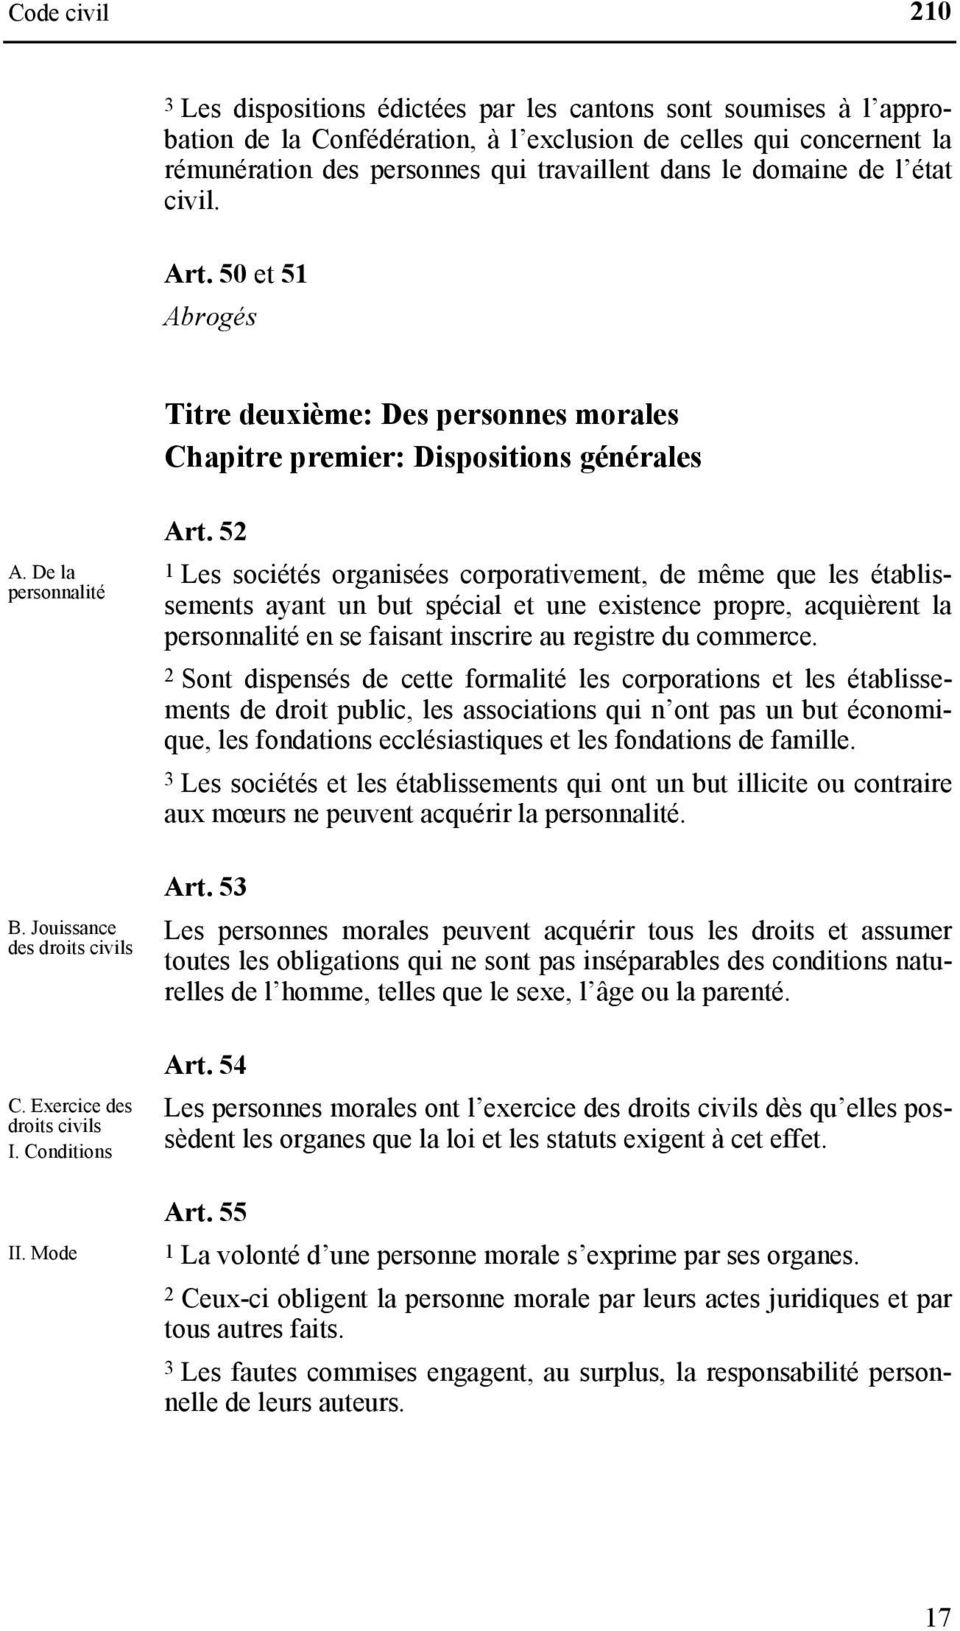 Exercice des droits civils I. Conditions II. Mode Art.